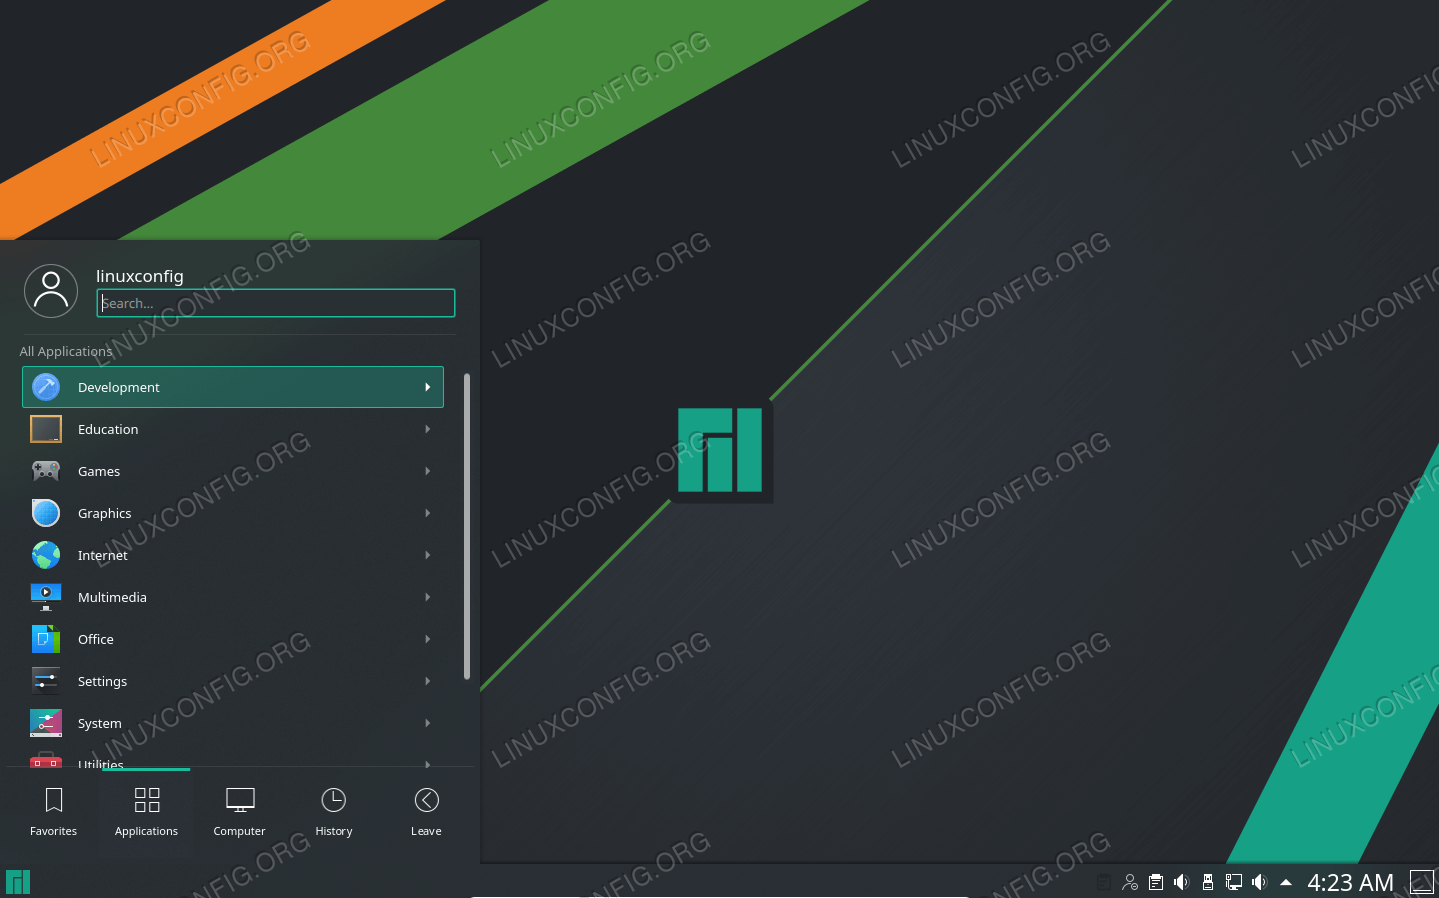 Manjaro with KDE Plasma desktop environment